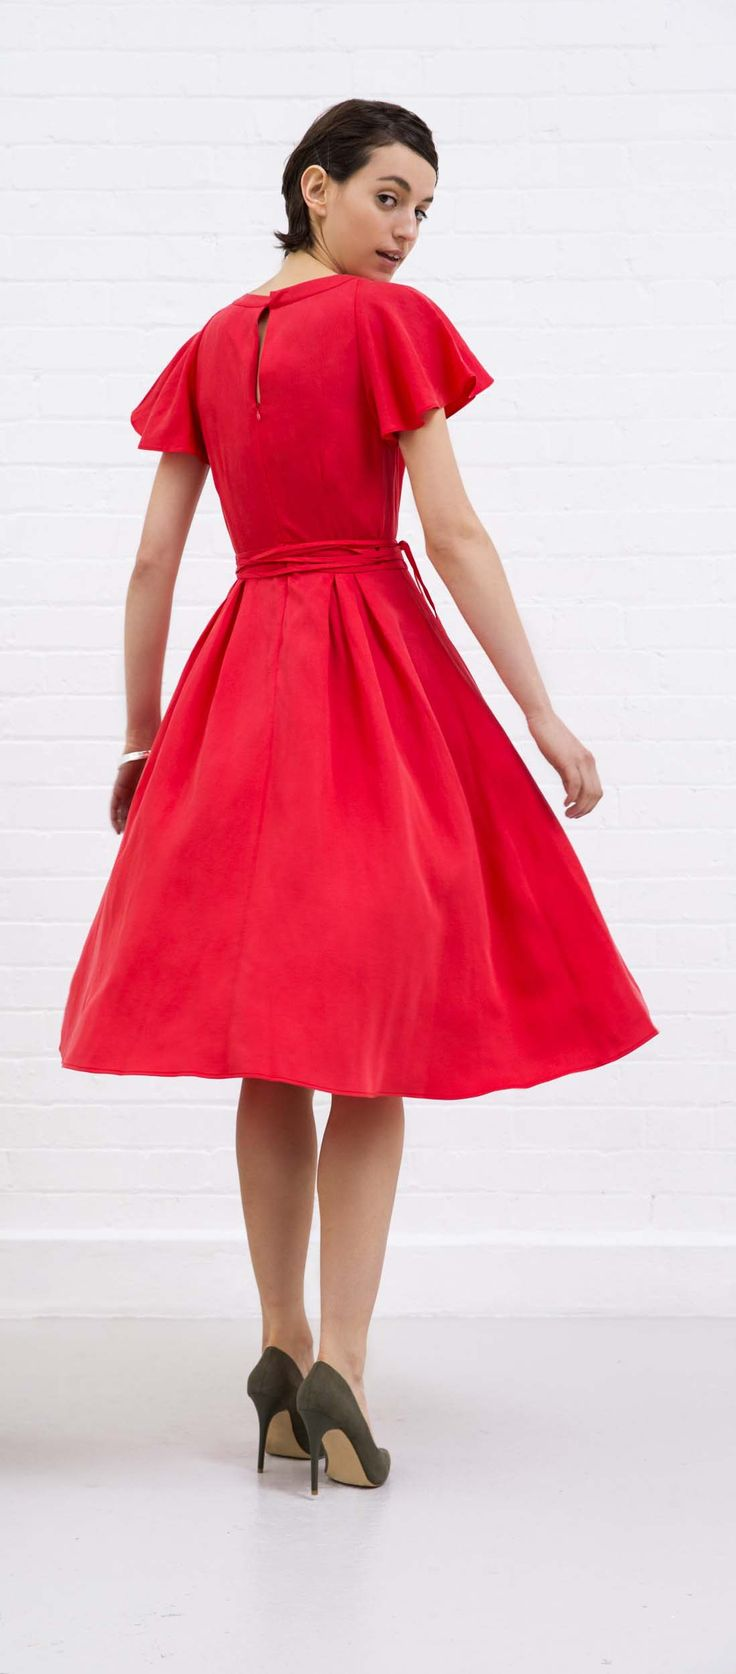 With sculptural sleeves and voluminous pleats at the waist, this fit & flare dress defines feminine elegance.